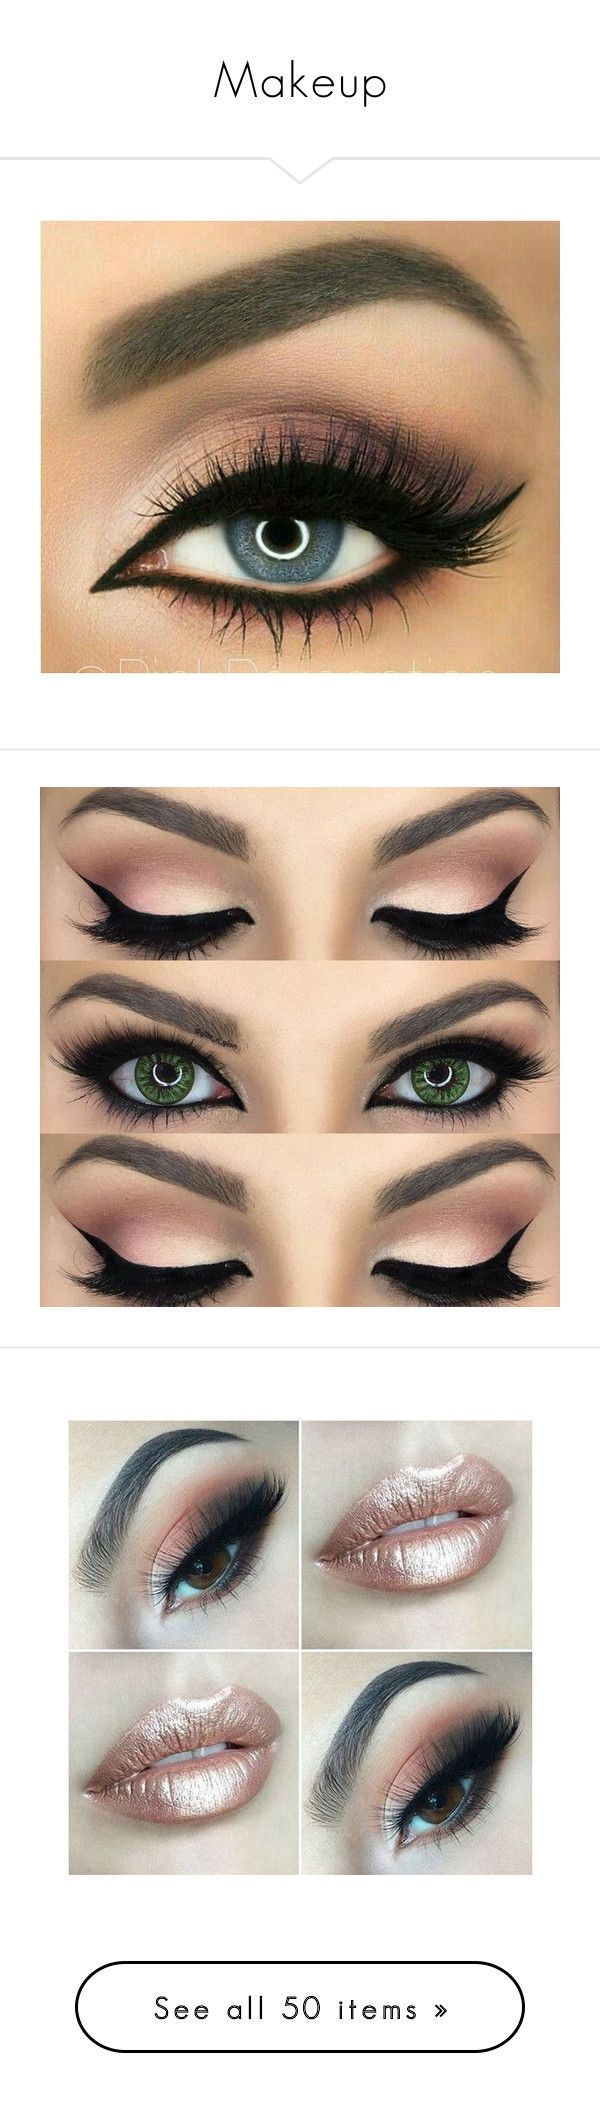 """""""Makeup"""" by wattpad-lover-z ❤ liked on Polyvore featuring beauty products, makeup, eye makeup, eyes, beauty, accessories, lip makeup, lipstick, eyeshadow and eye's"""